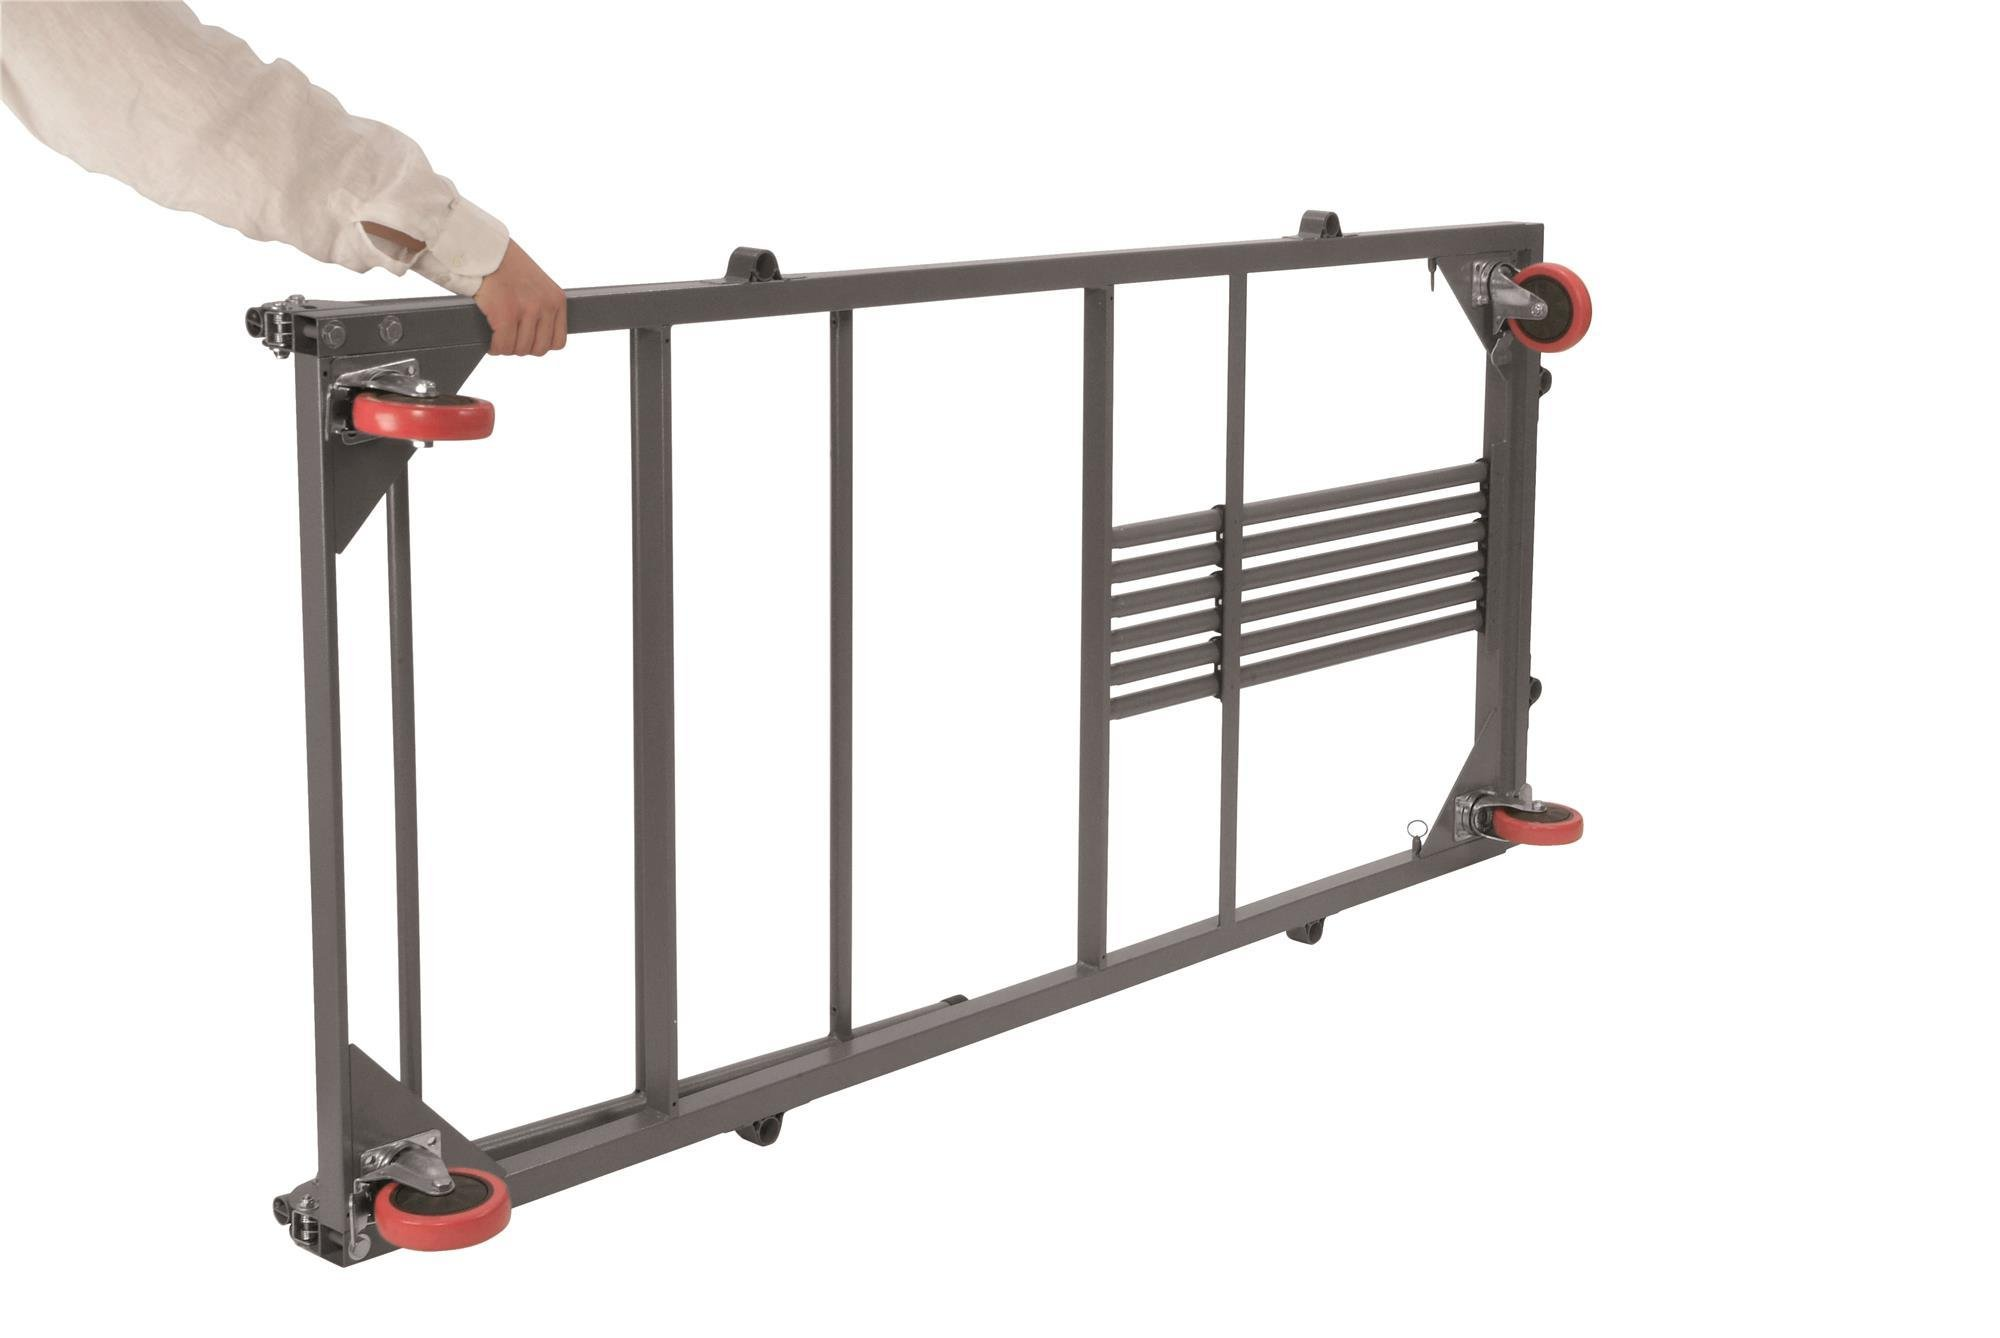 ZOWN Commercial 60241GRY1E Heavy Duty Adjustable Length Rectangular Folding Table Trolley Cart with Locking Wheels, Gray